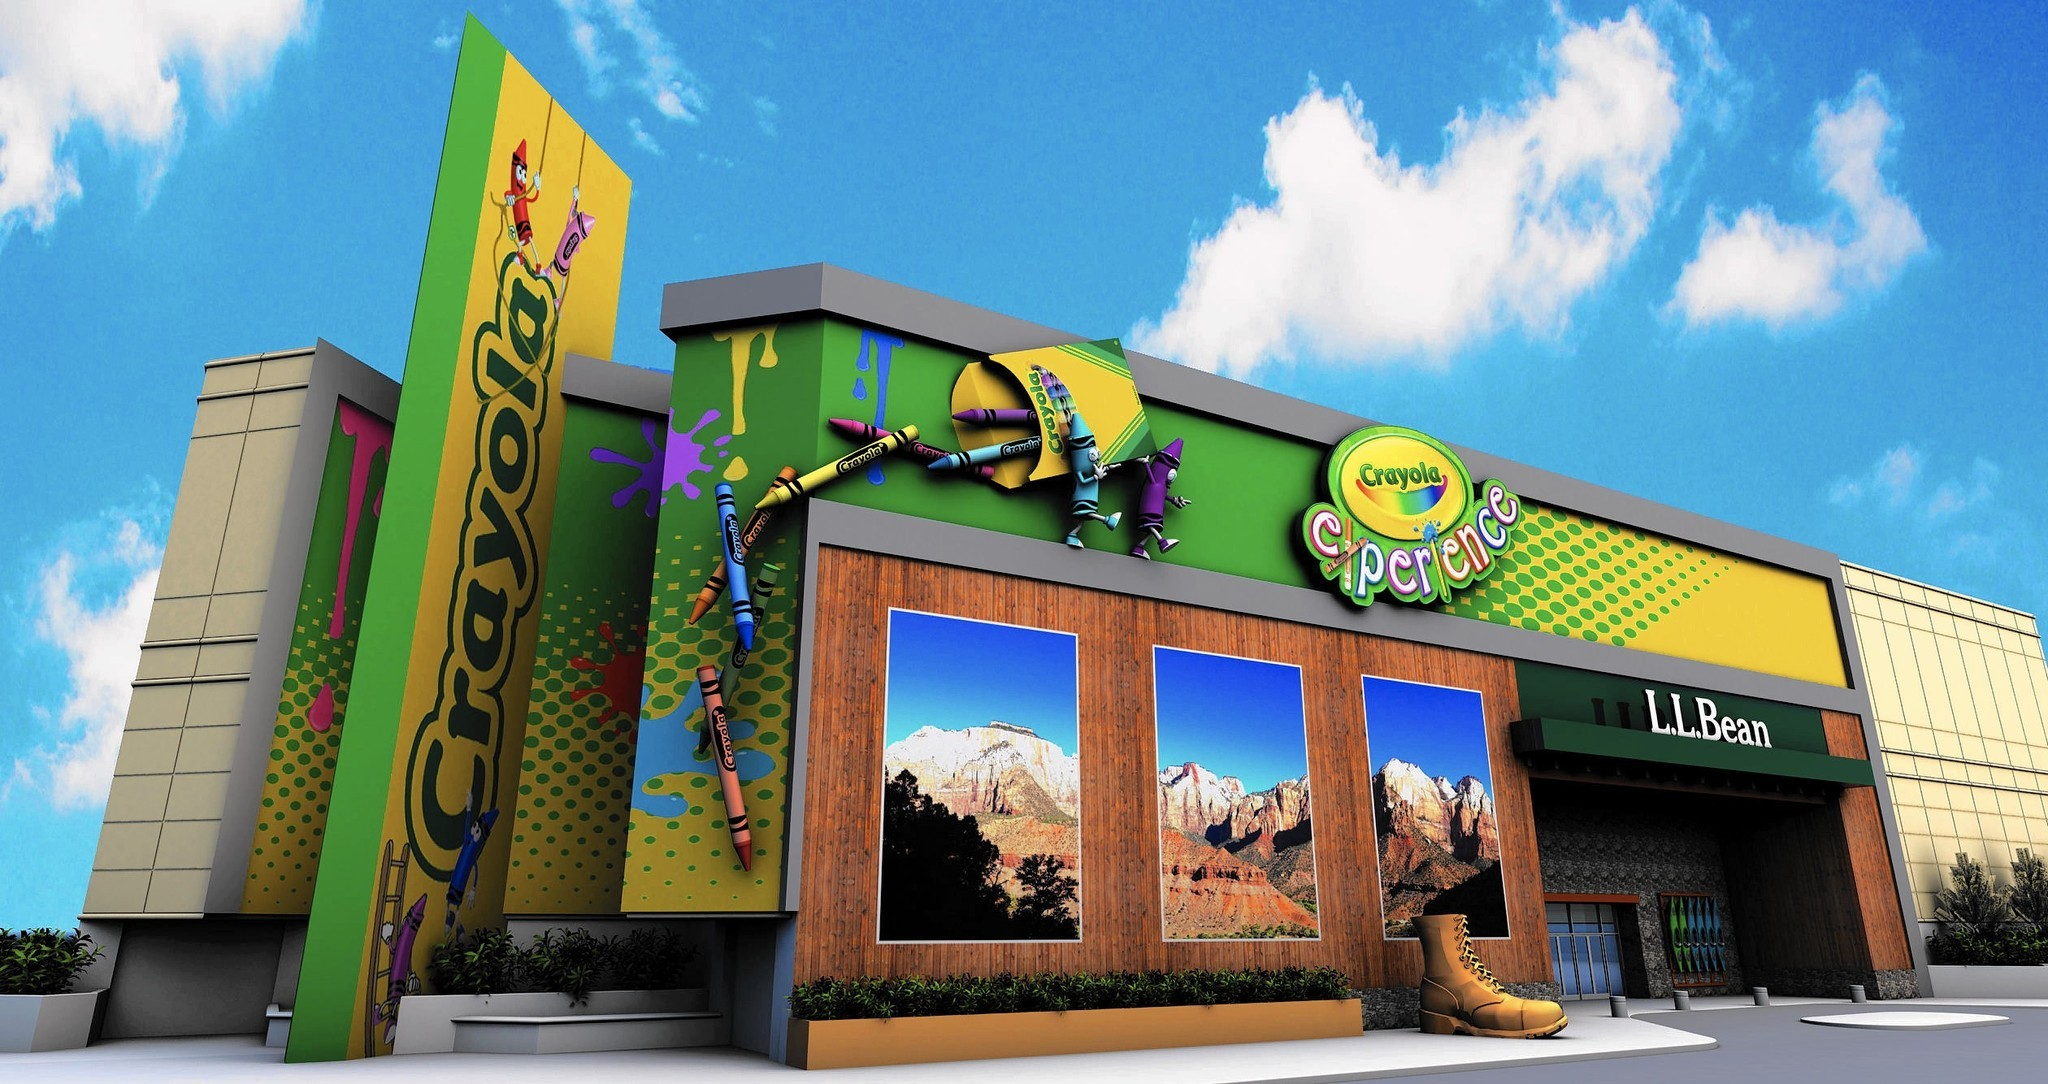 Crayola brings its Experience to Mall of America for first